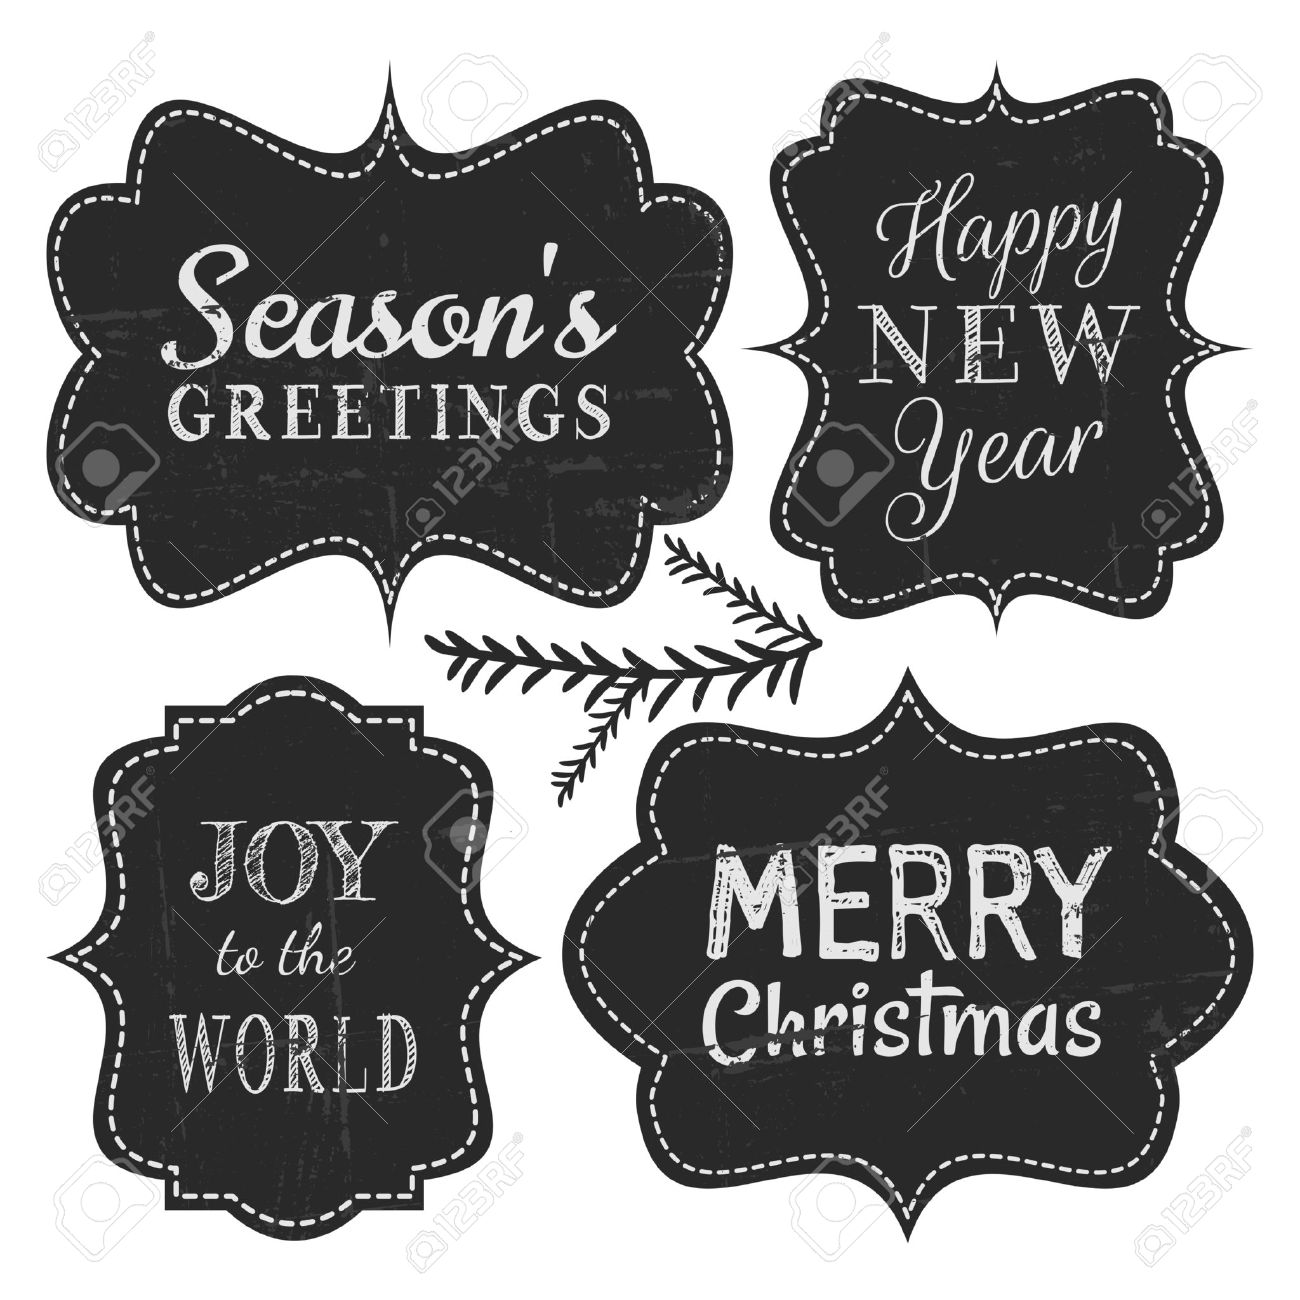 Chalkboard style vintage labels for Christmas and New Year, isolated on white background. Stock Vector - 23516033